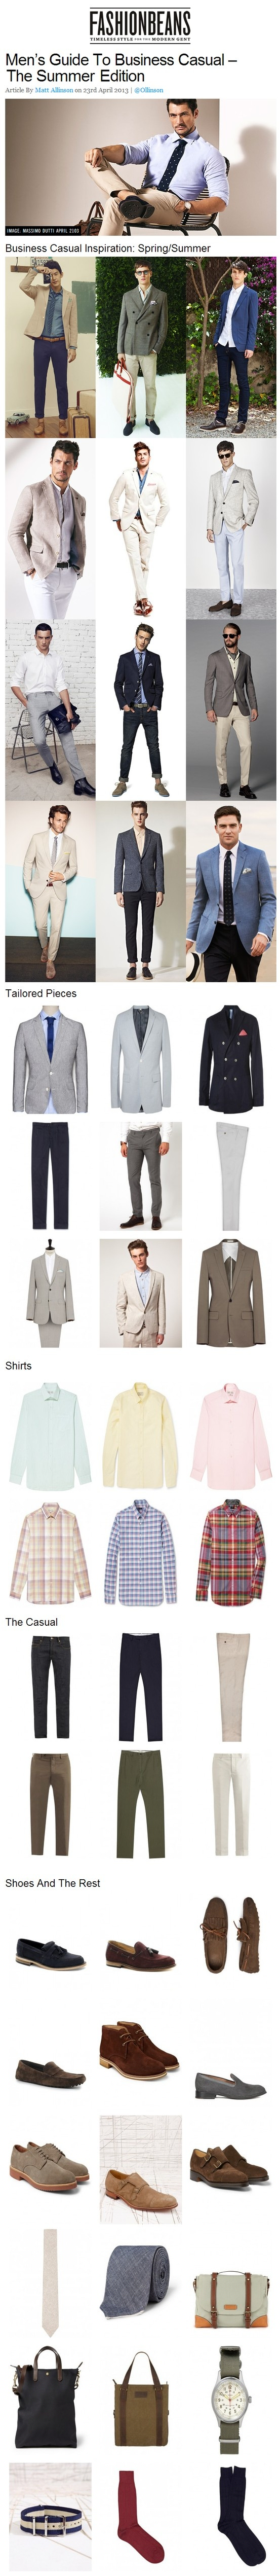 Men's Guide To Business Casual - The Summer Edition | FashionBeans